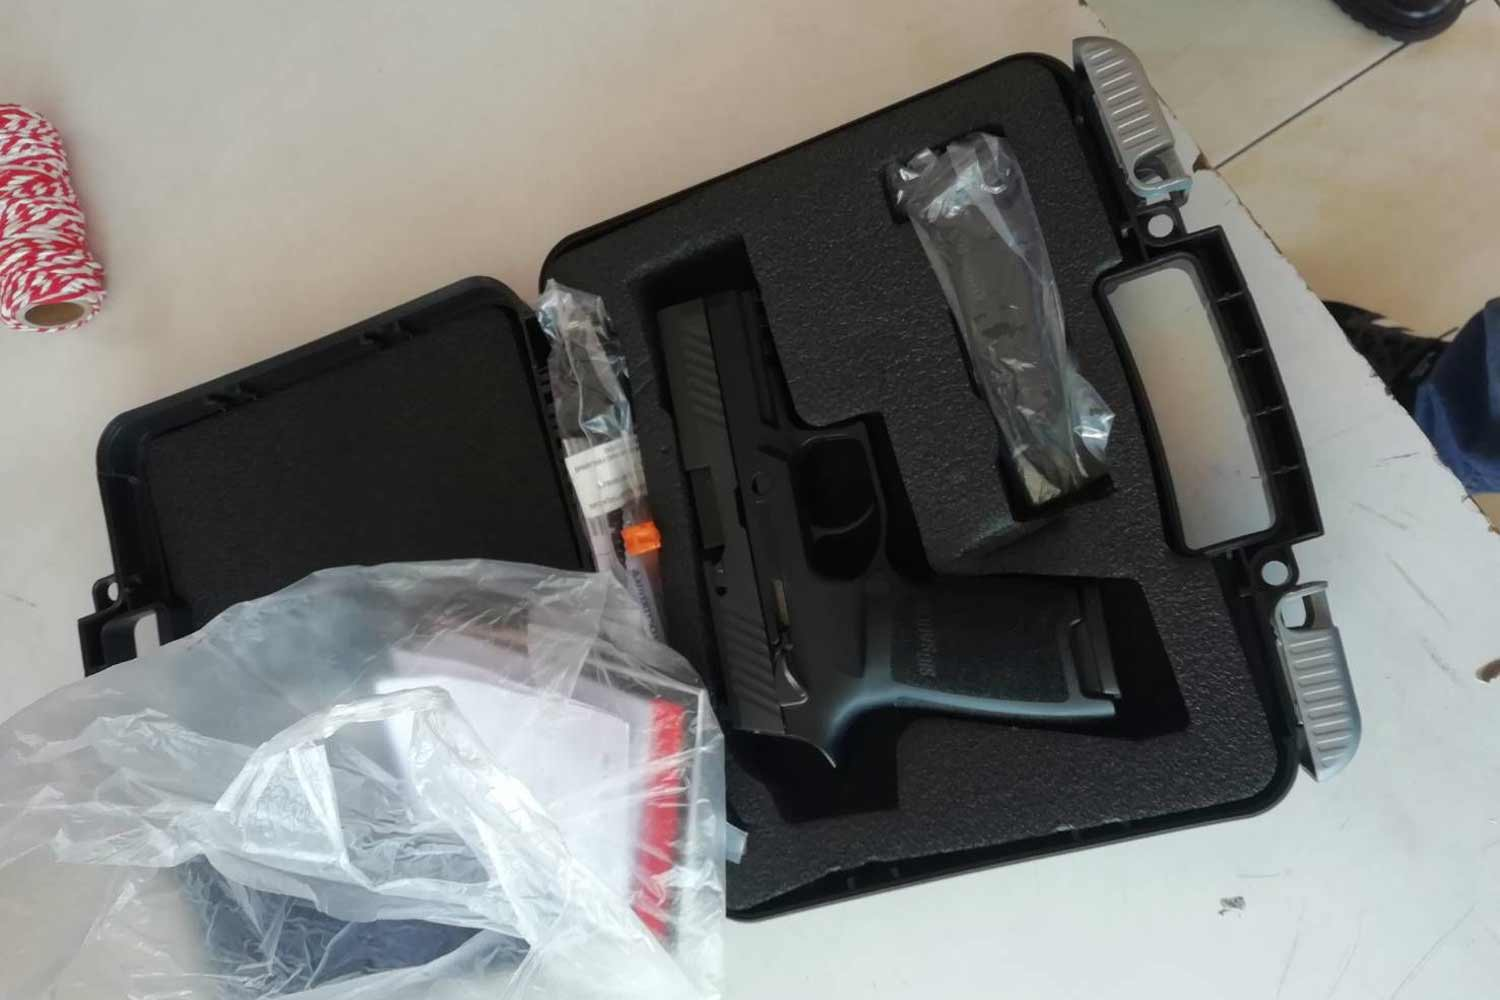 The pistol is kept in its case after a pupil played with it and accidentally shot a friend at Sukhanaree School in Muang district, Nakhon Ratchasima, on Friday morning. (Photo by Prasit Tangprasert)